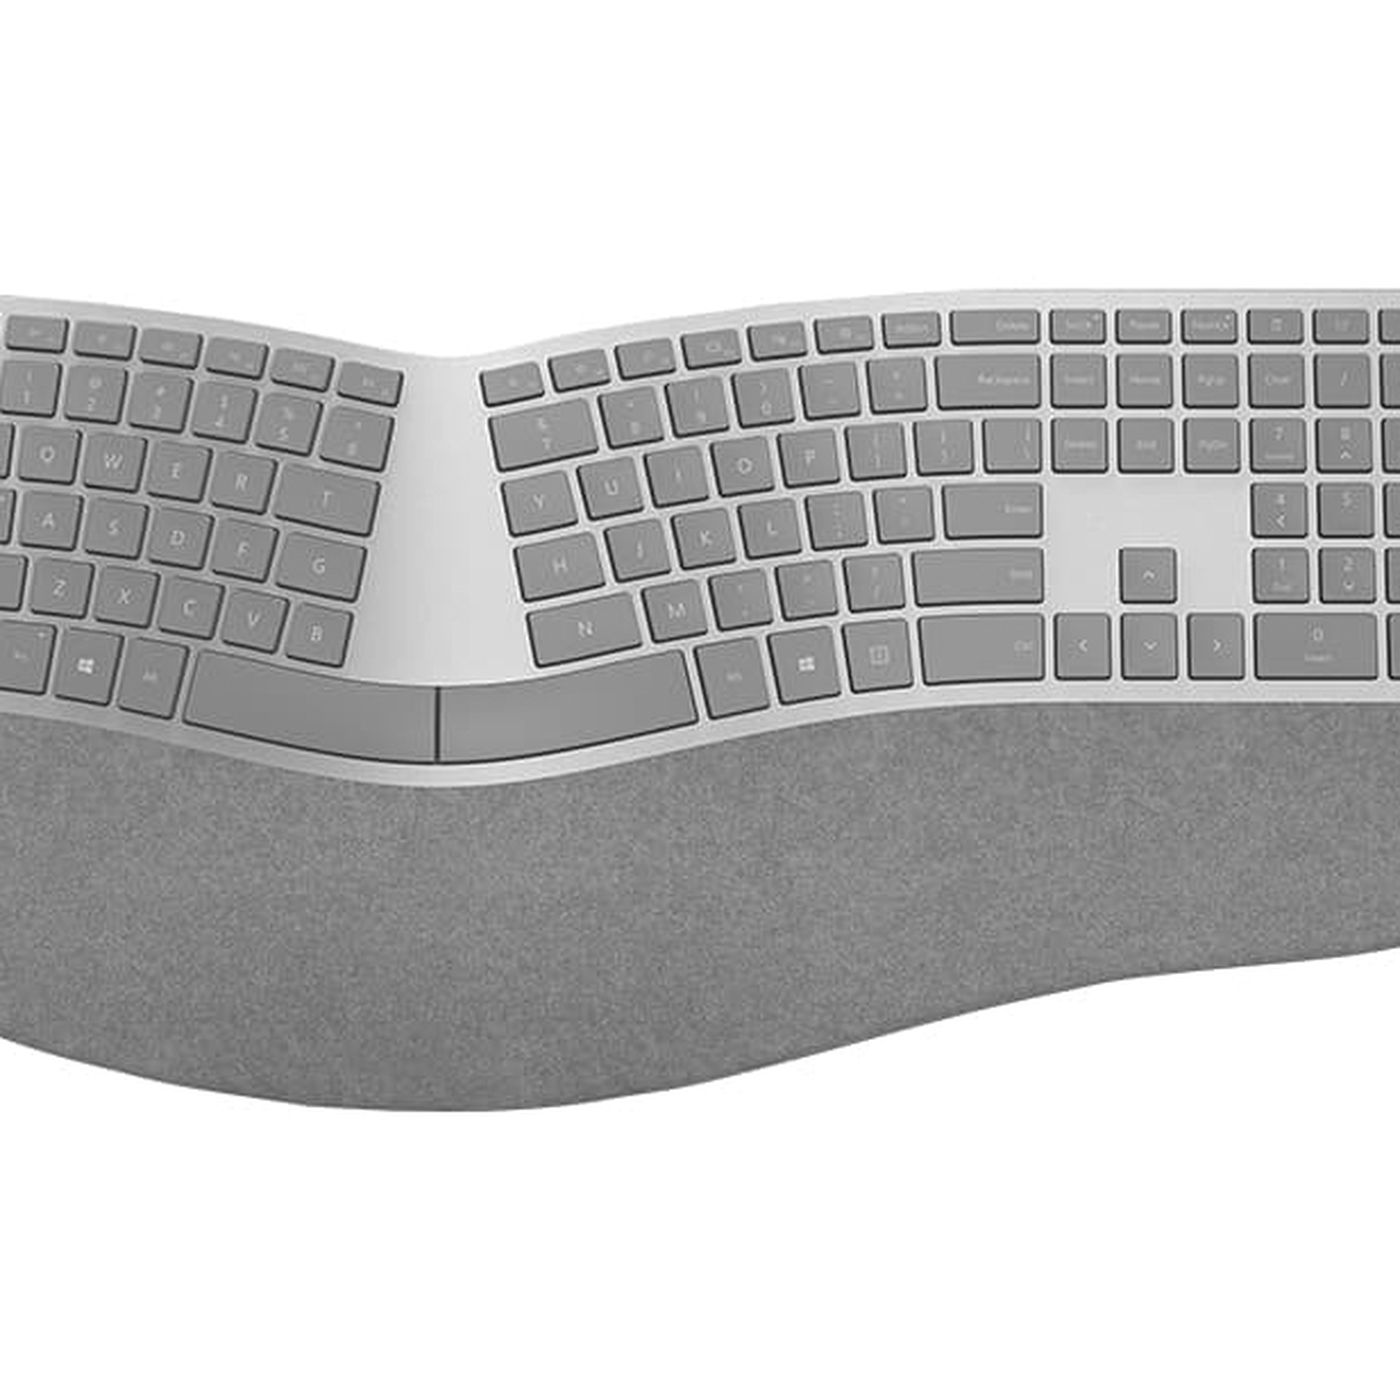 Microsoft S Awesome Ergonomic Keyboard Finally Works Over Bluetooth The Verge